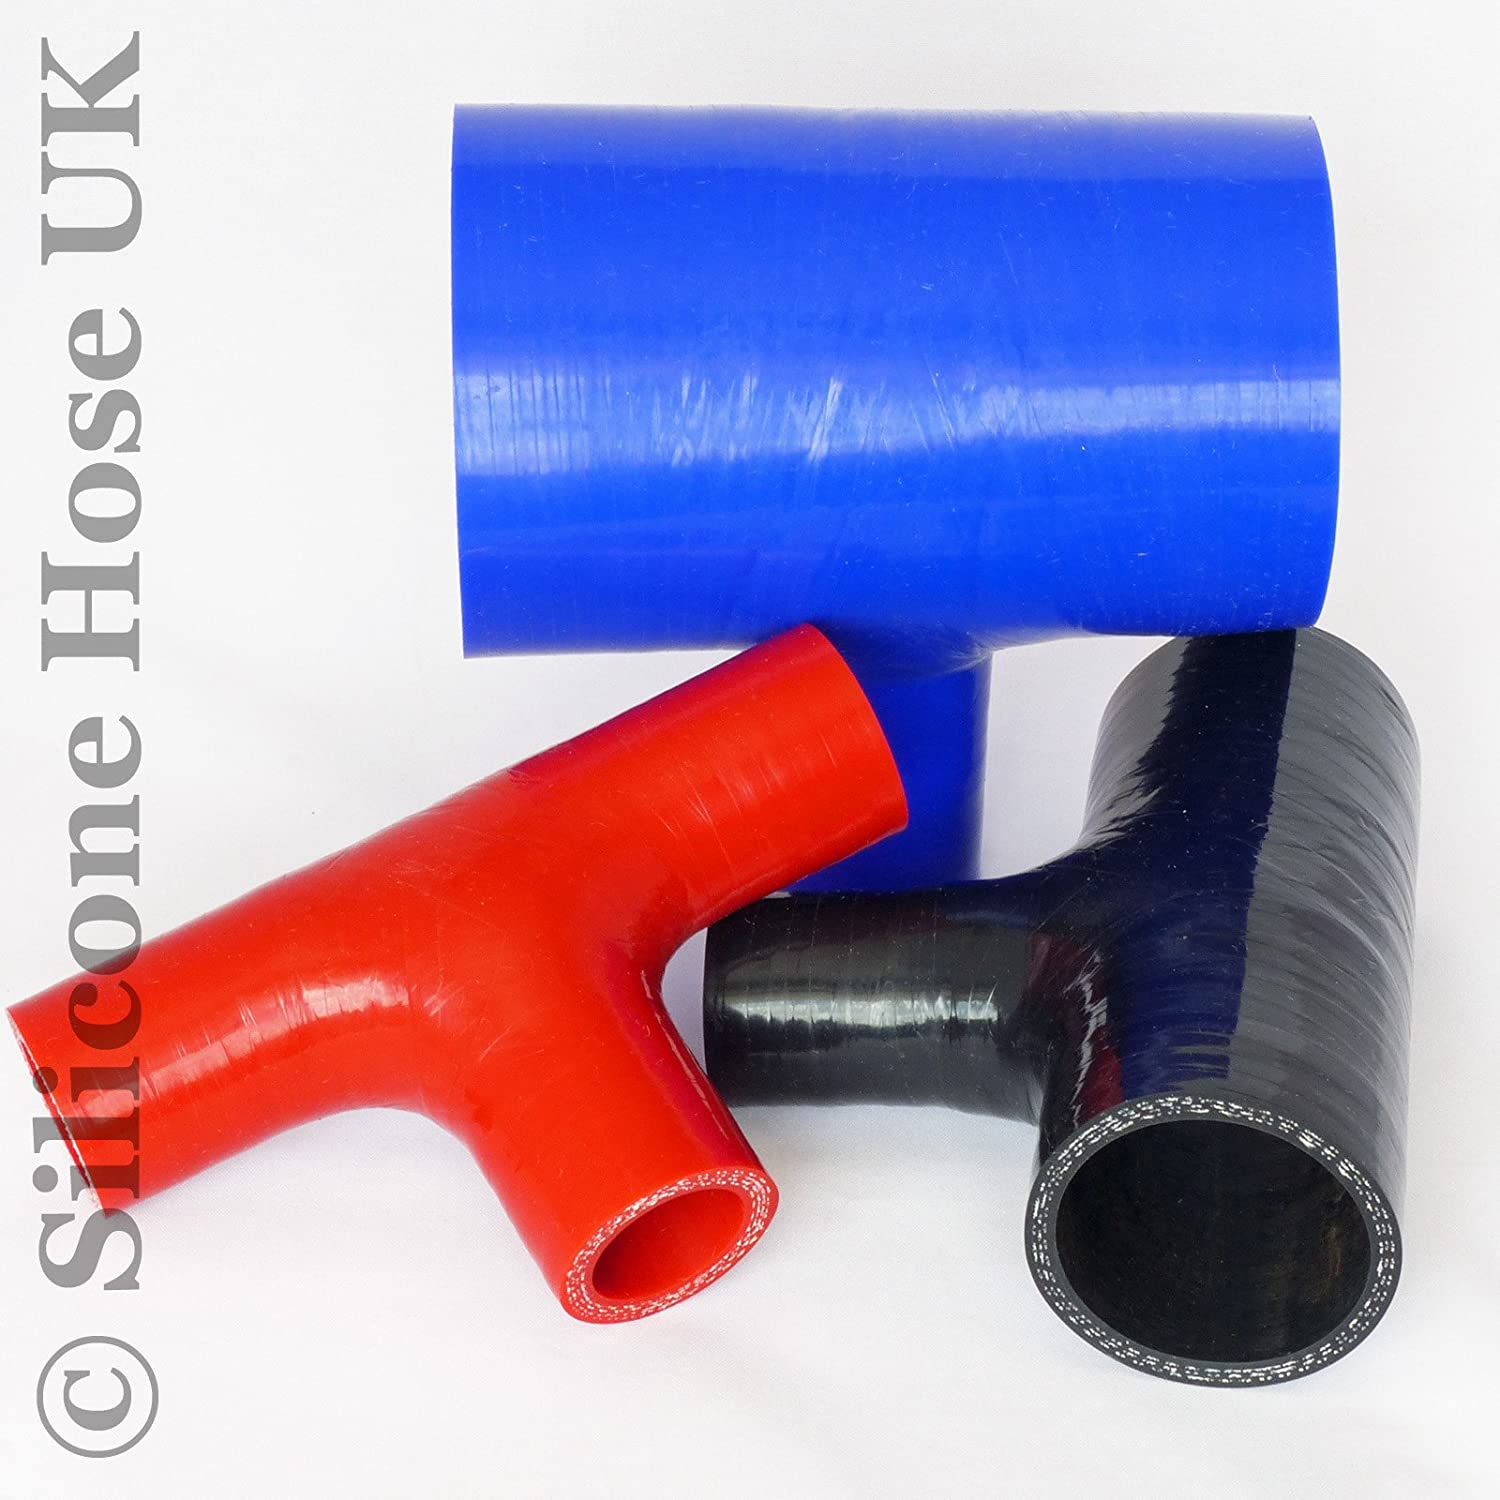 Black Reinforced Inlet Connector ID 25mm Silicone T-Piece Dump Valve Hose Pipe